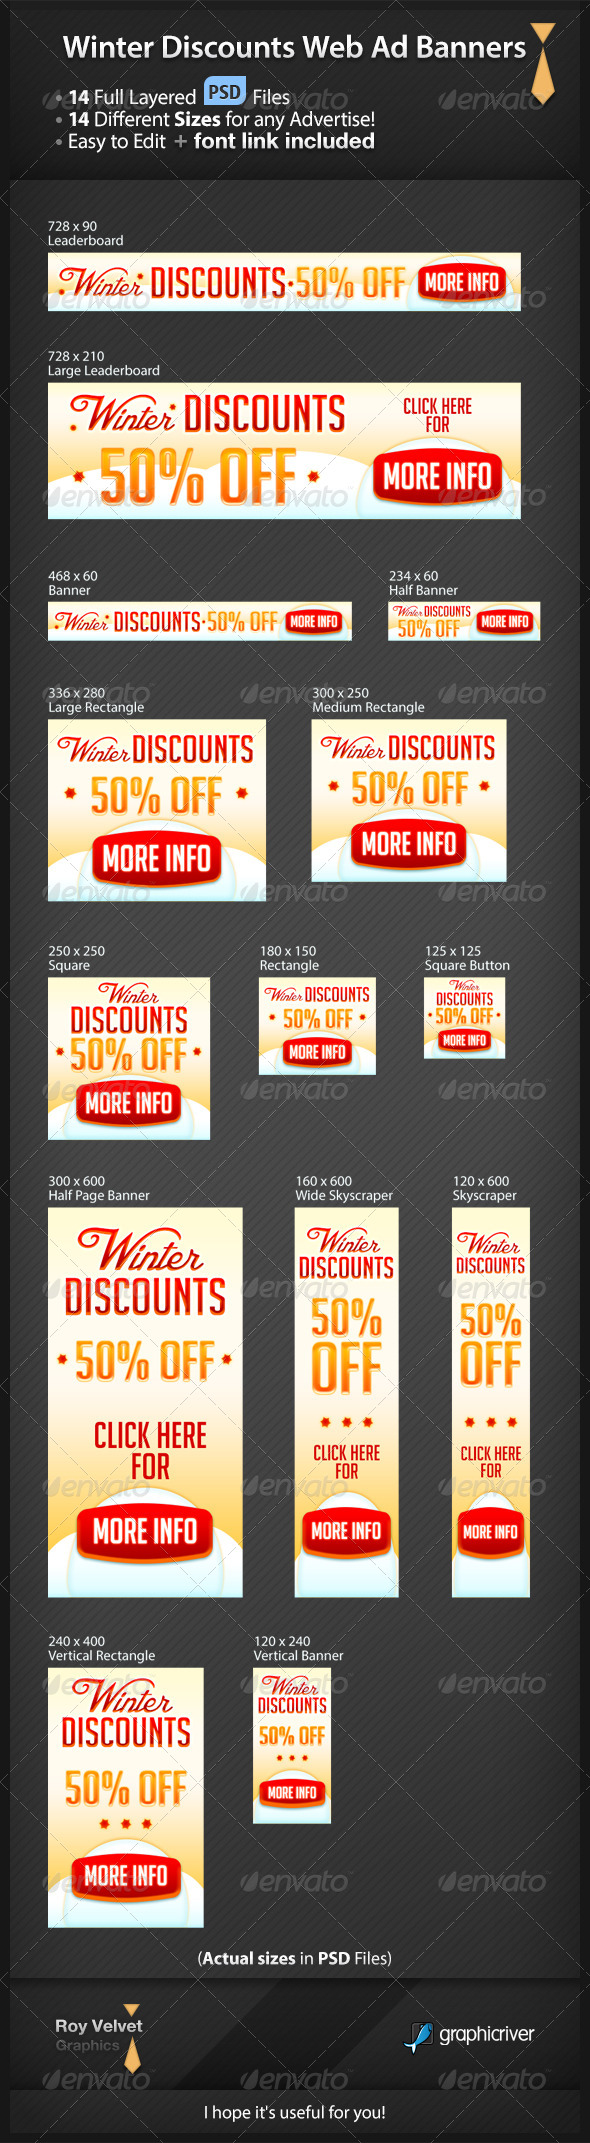 Winter Discounts Web Ad Banners - Banners & Ads Web Elements